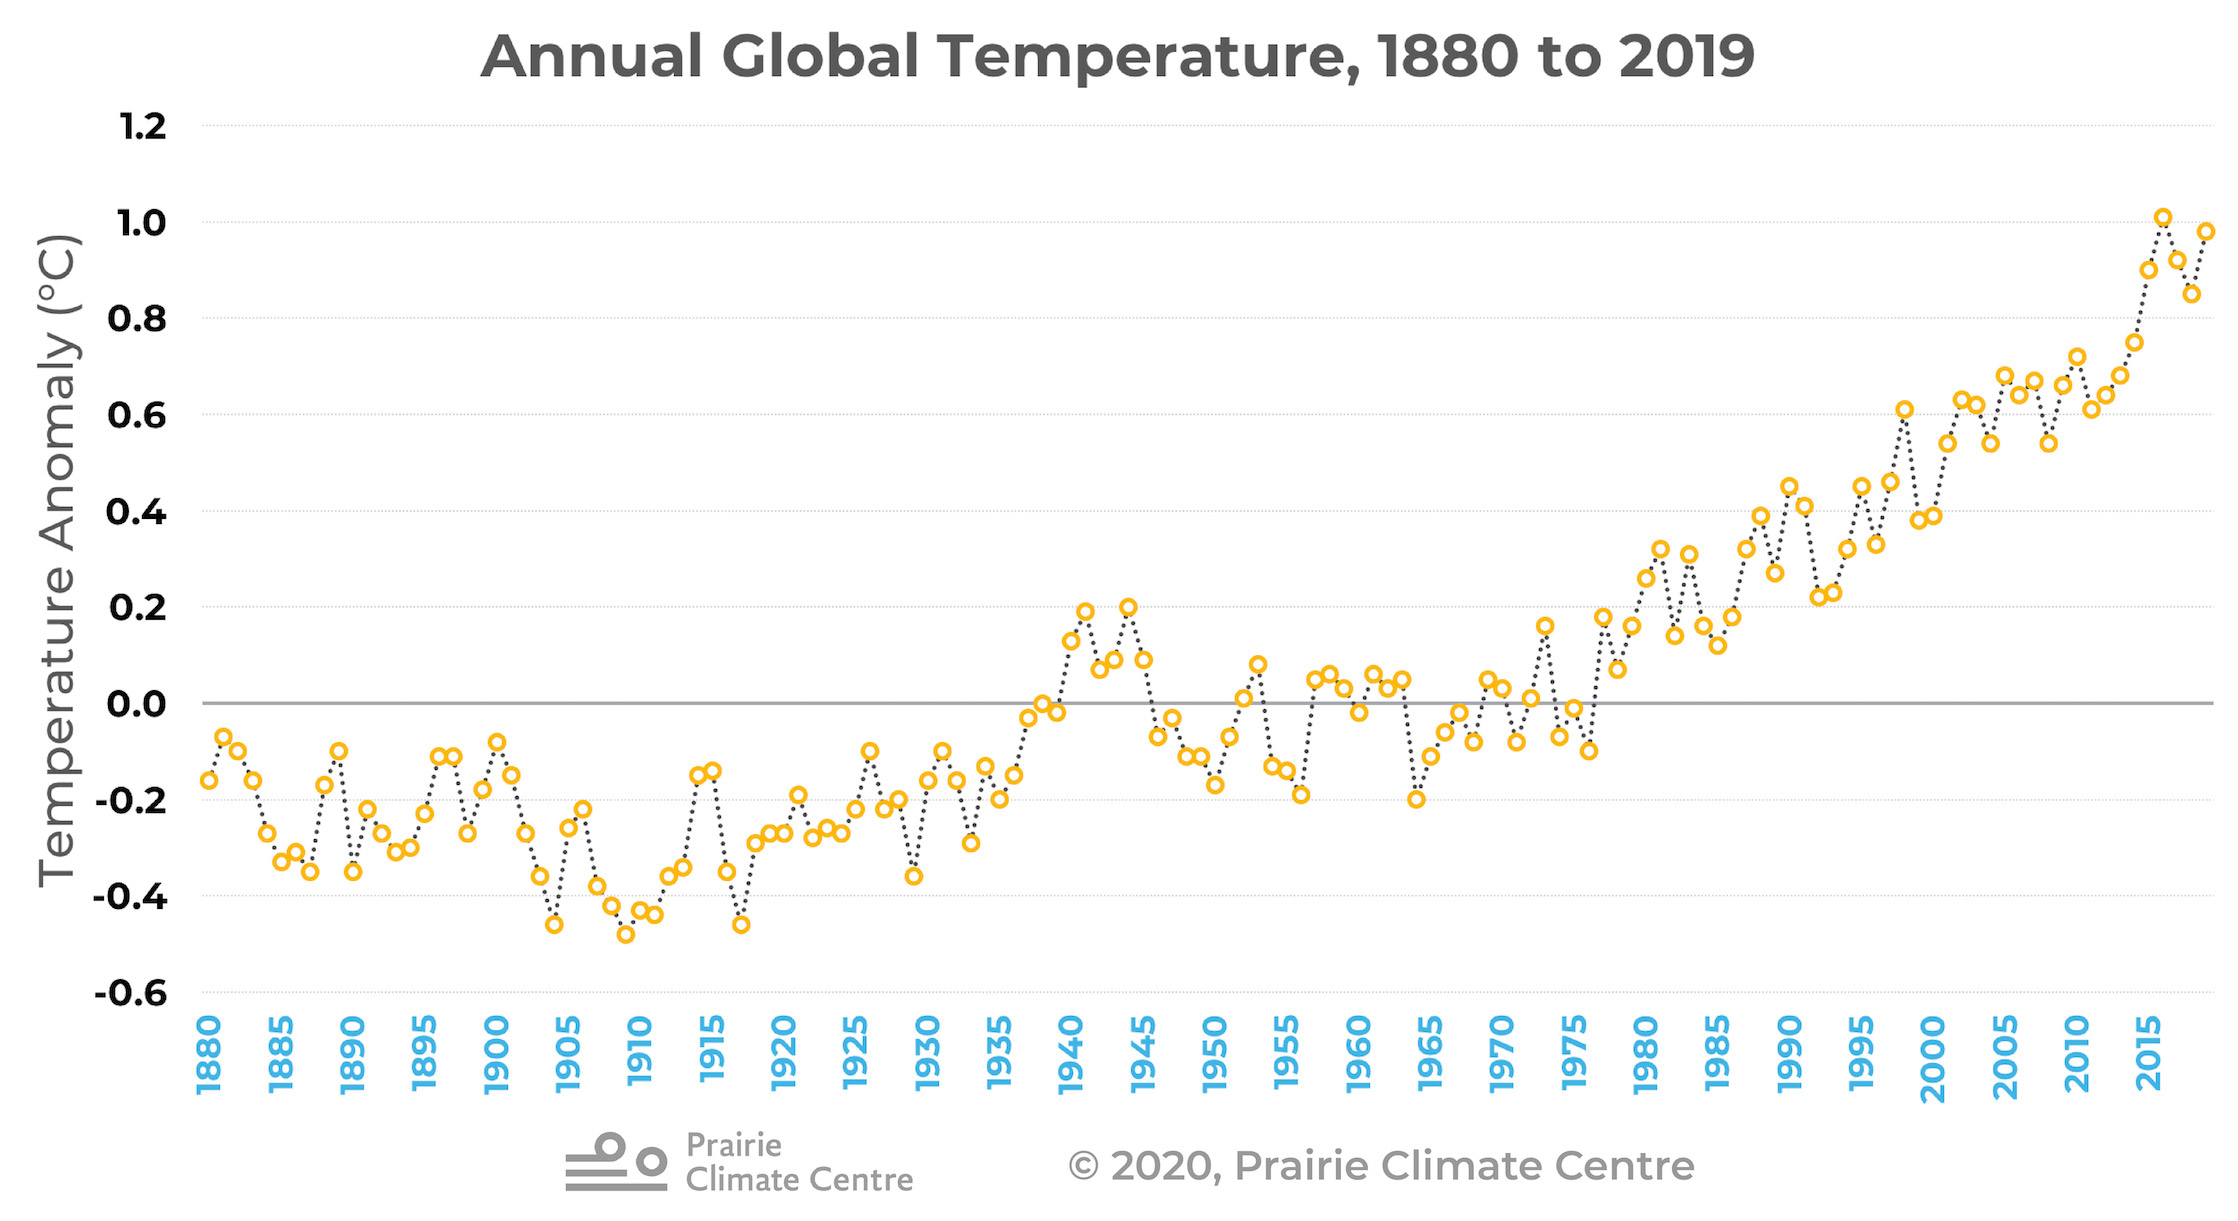 Annual Global Temperature 1880-2019